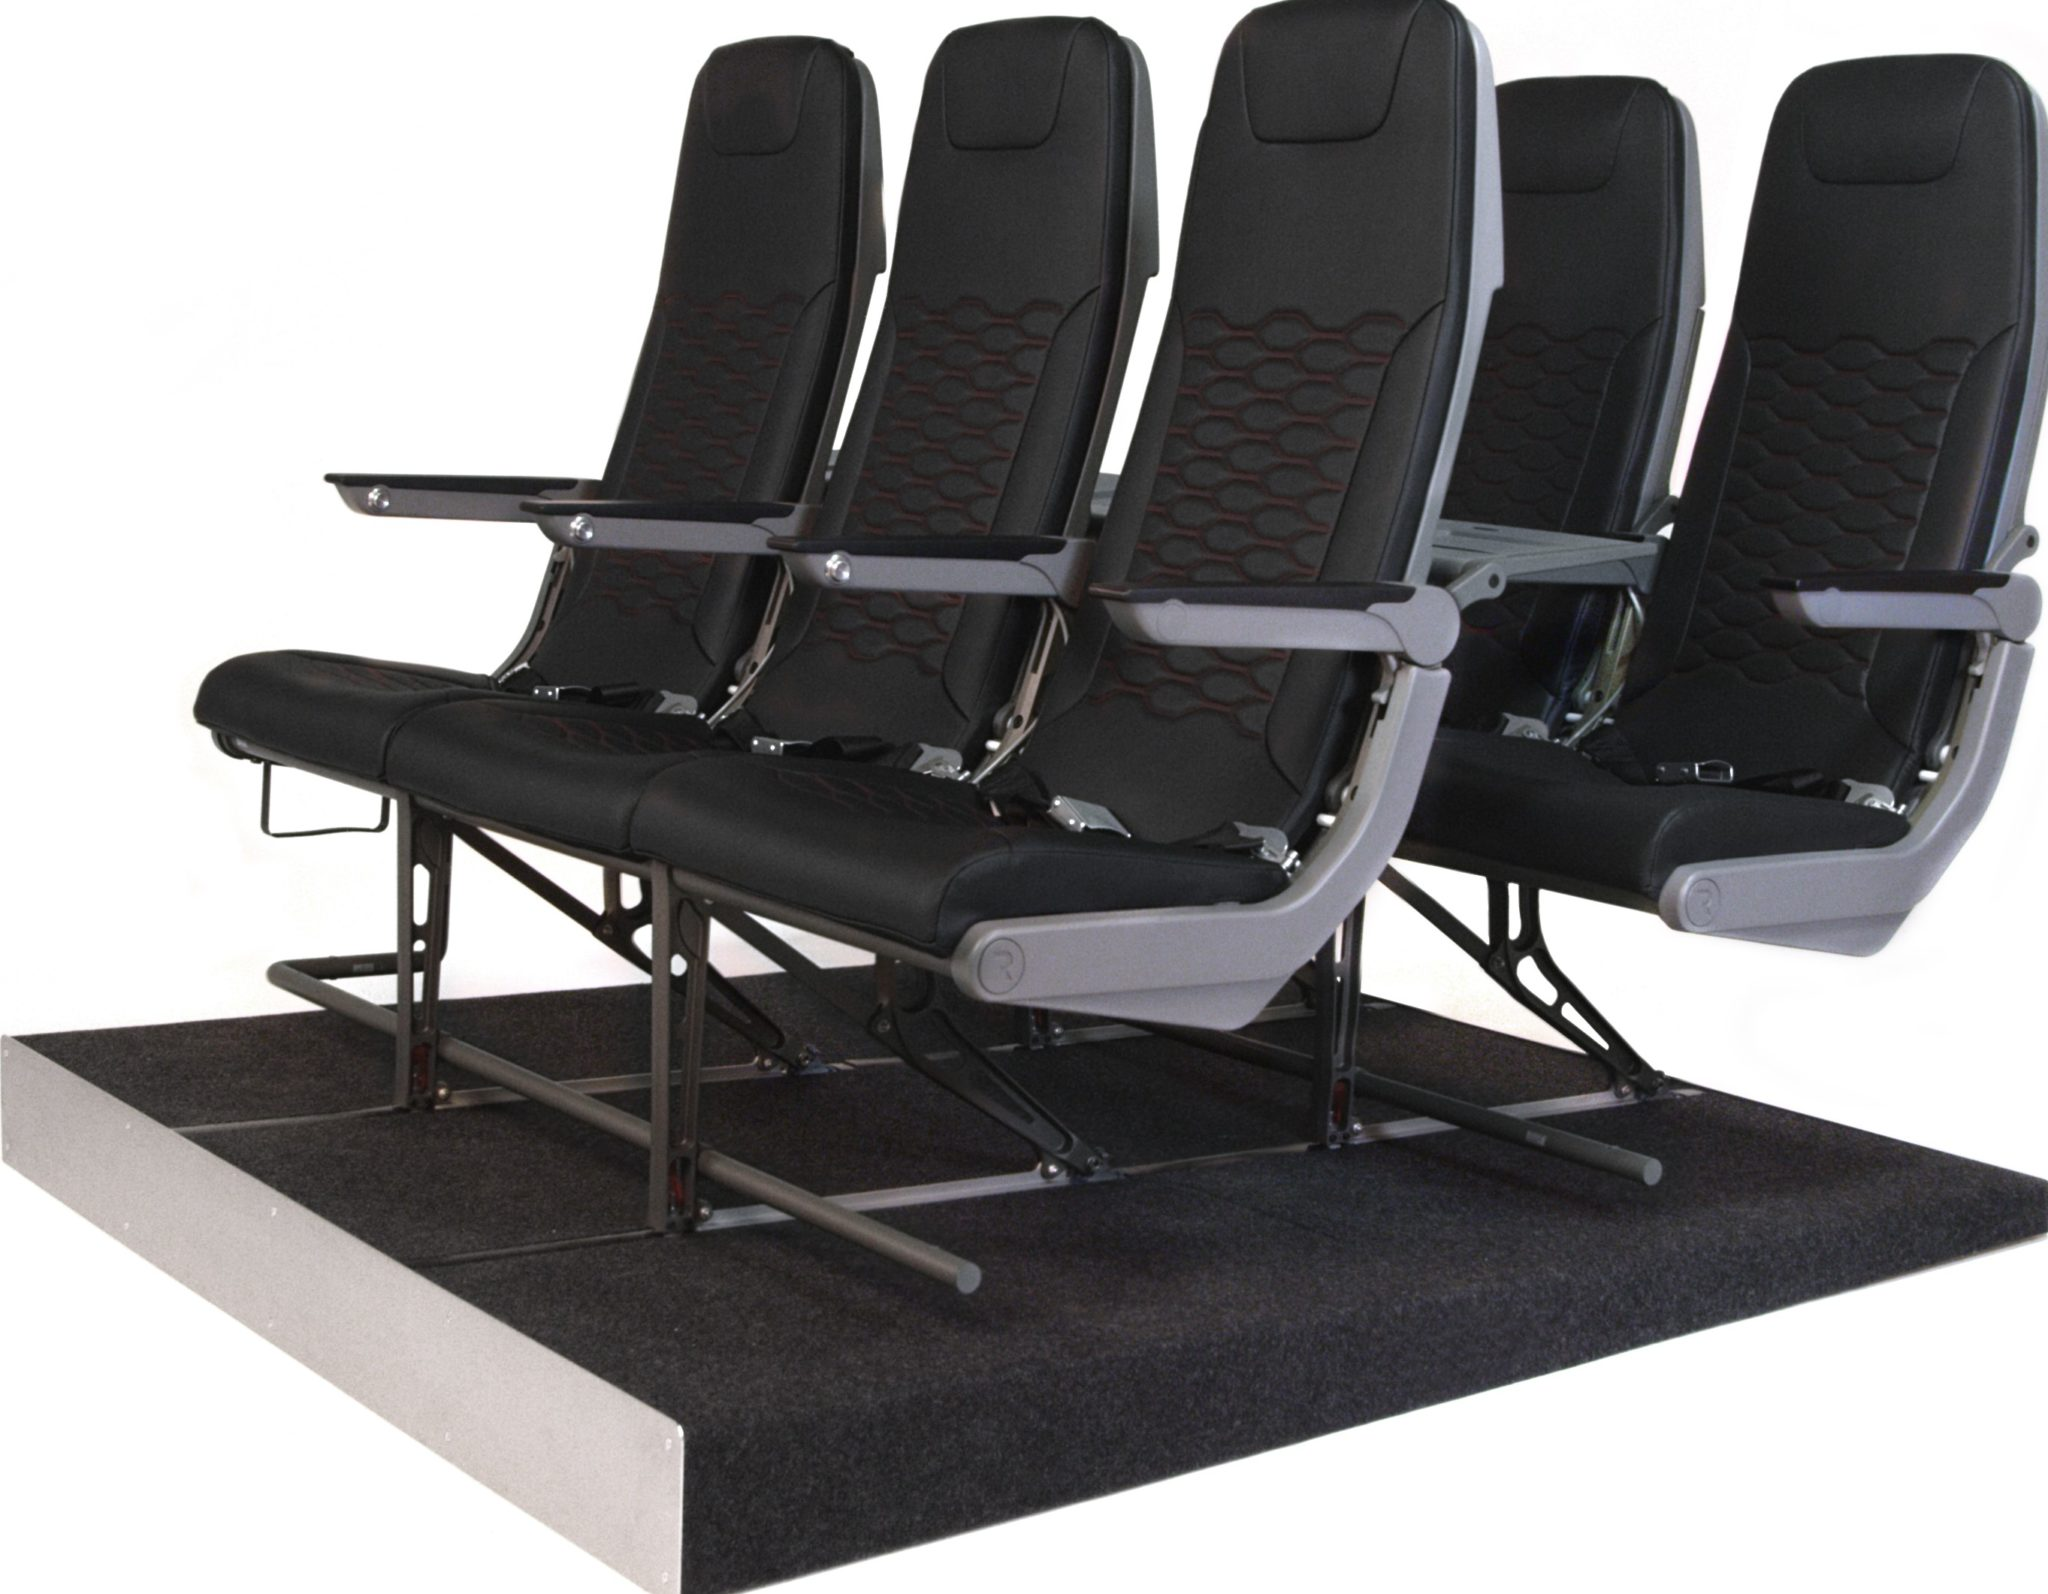 Mirus Hawk seating Image: Mirus